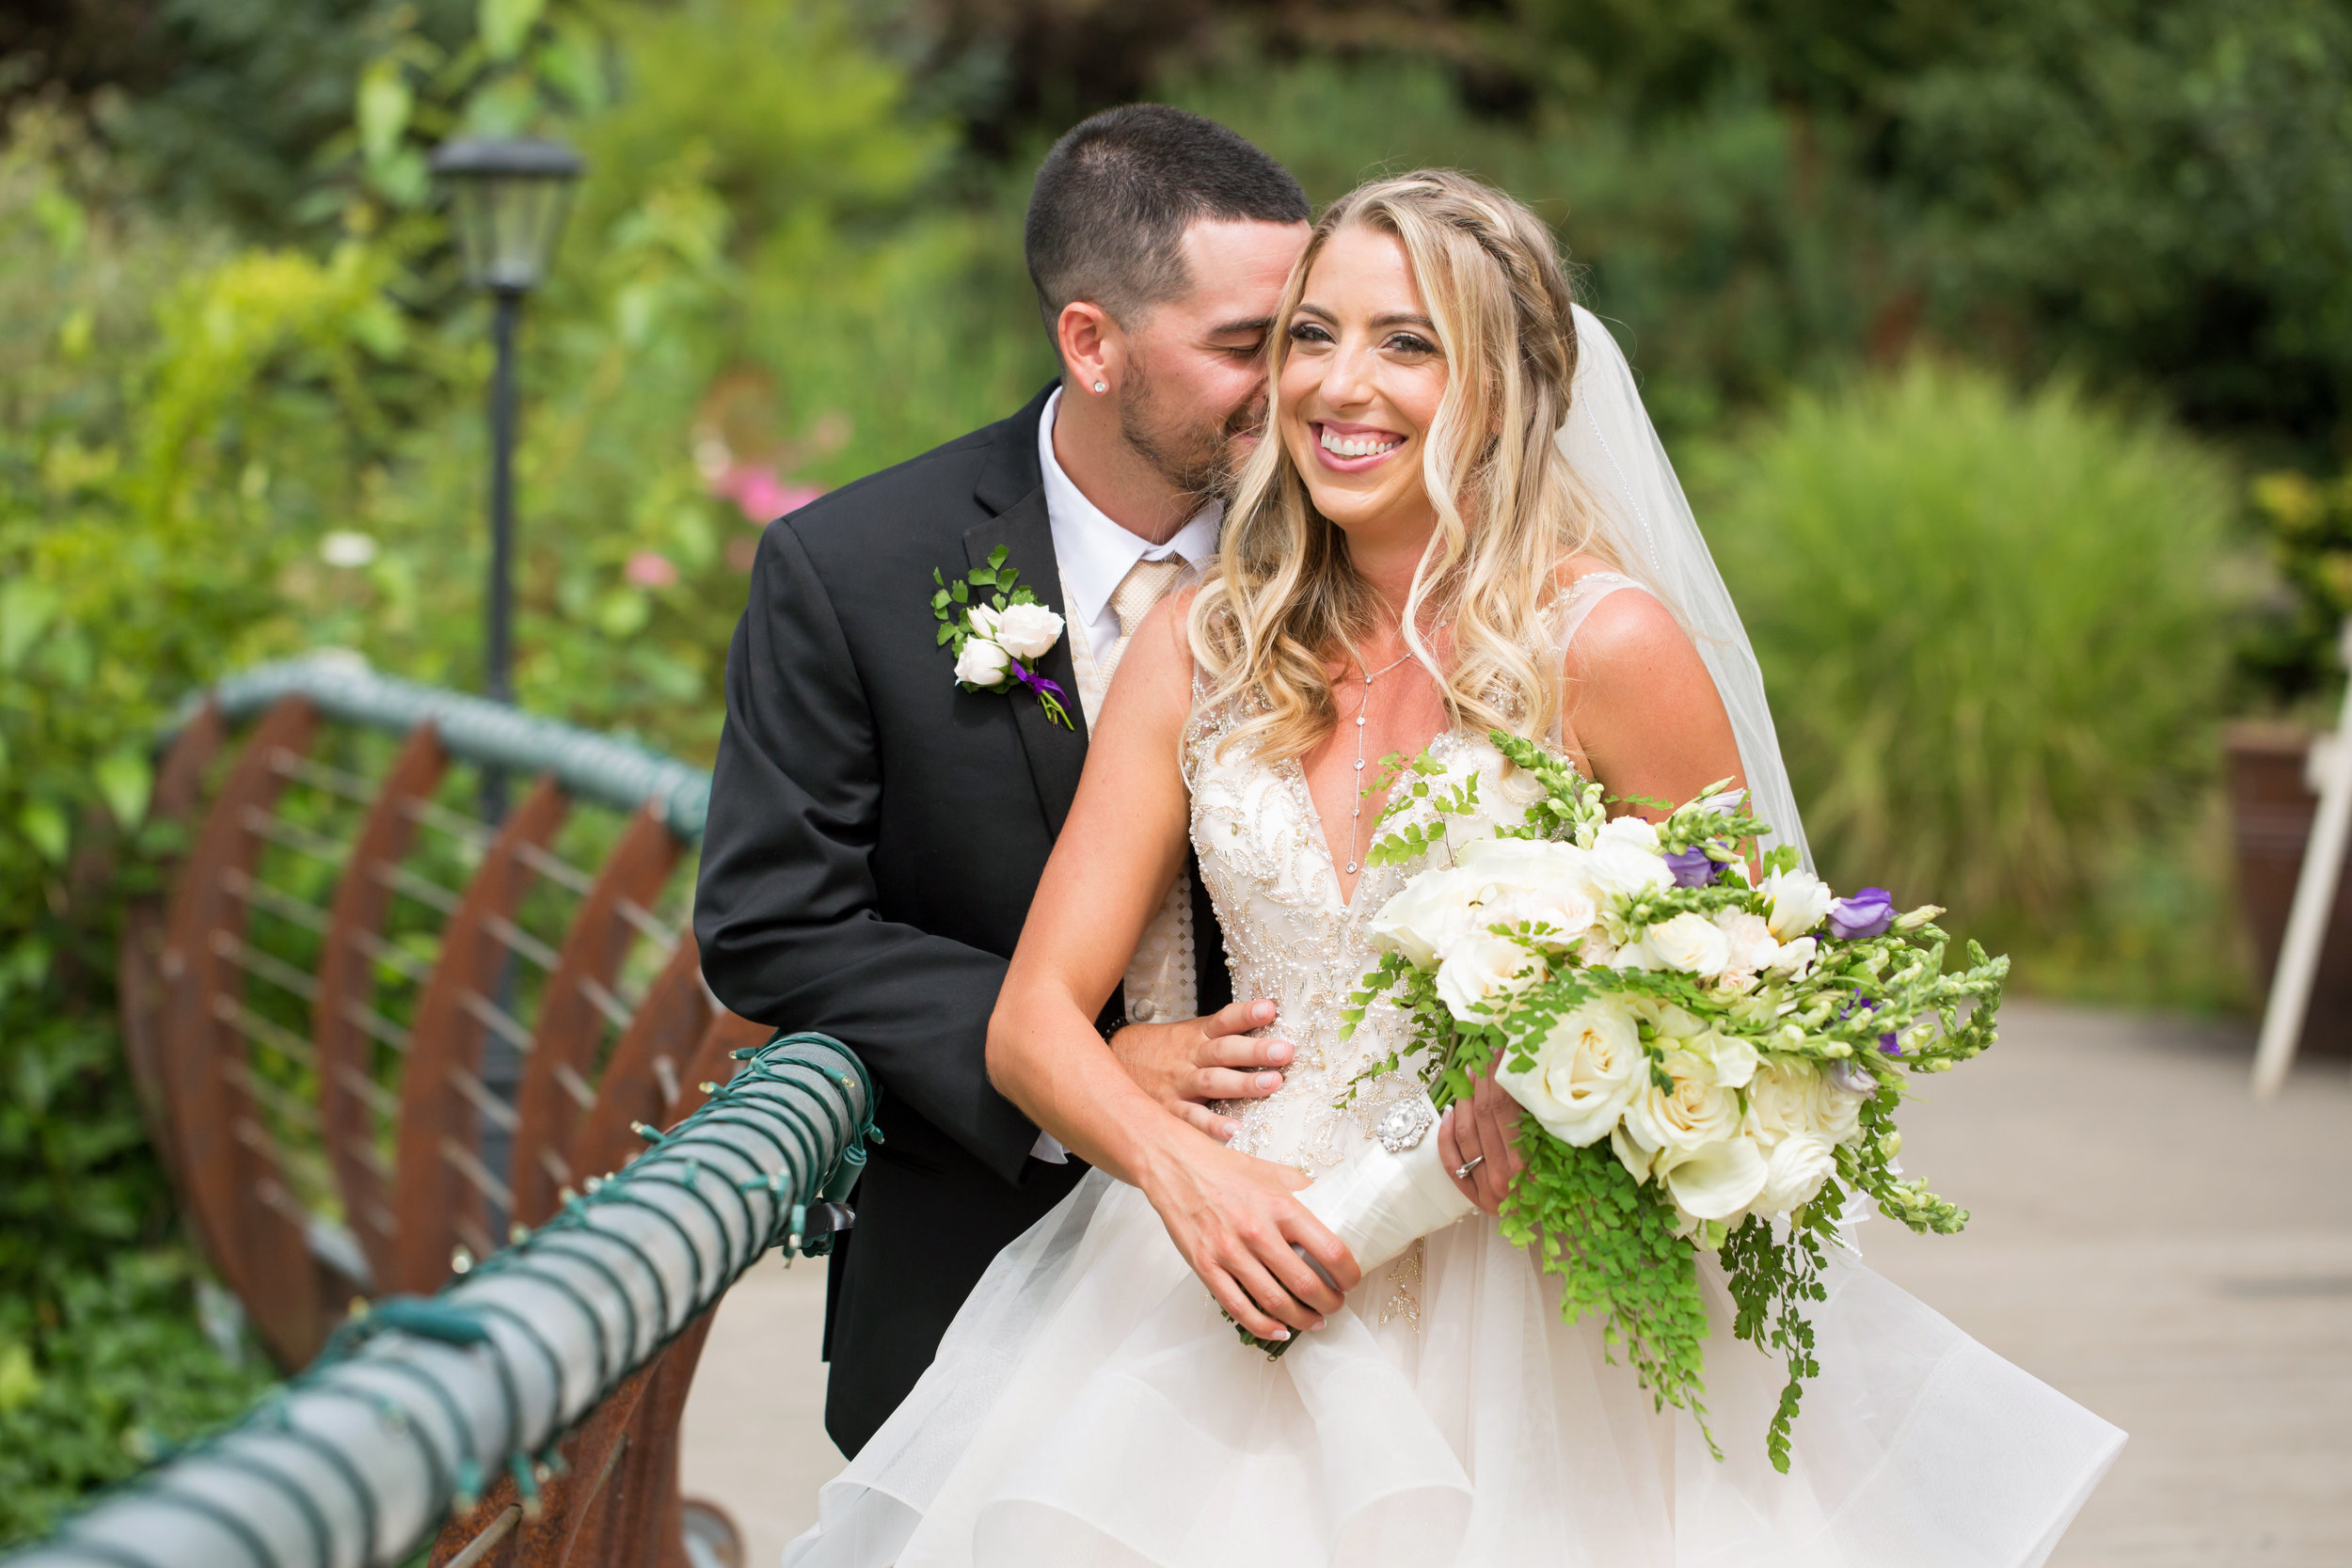 Bridalbliss.com | Portland Wedding | Oregon Event Planning and Design | McCloud Photography